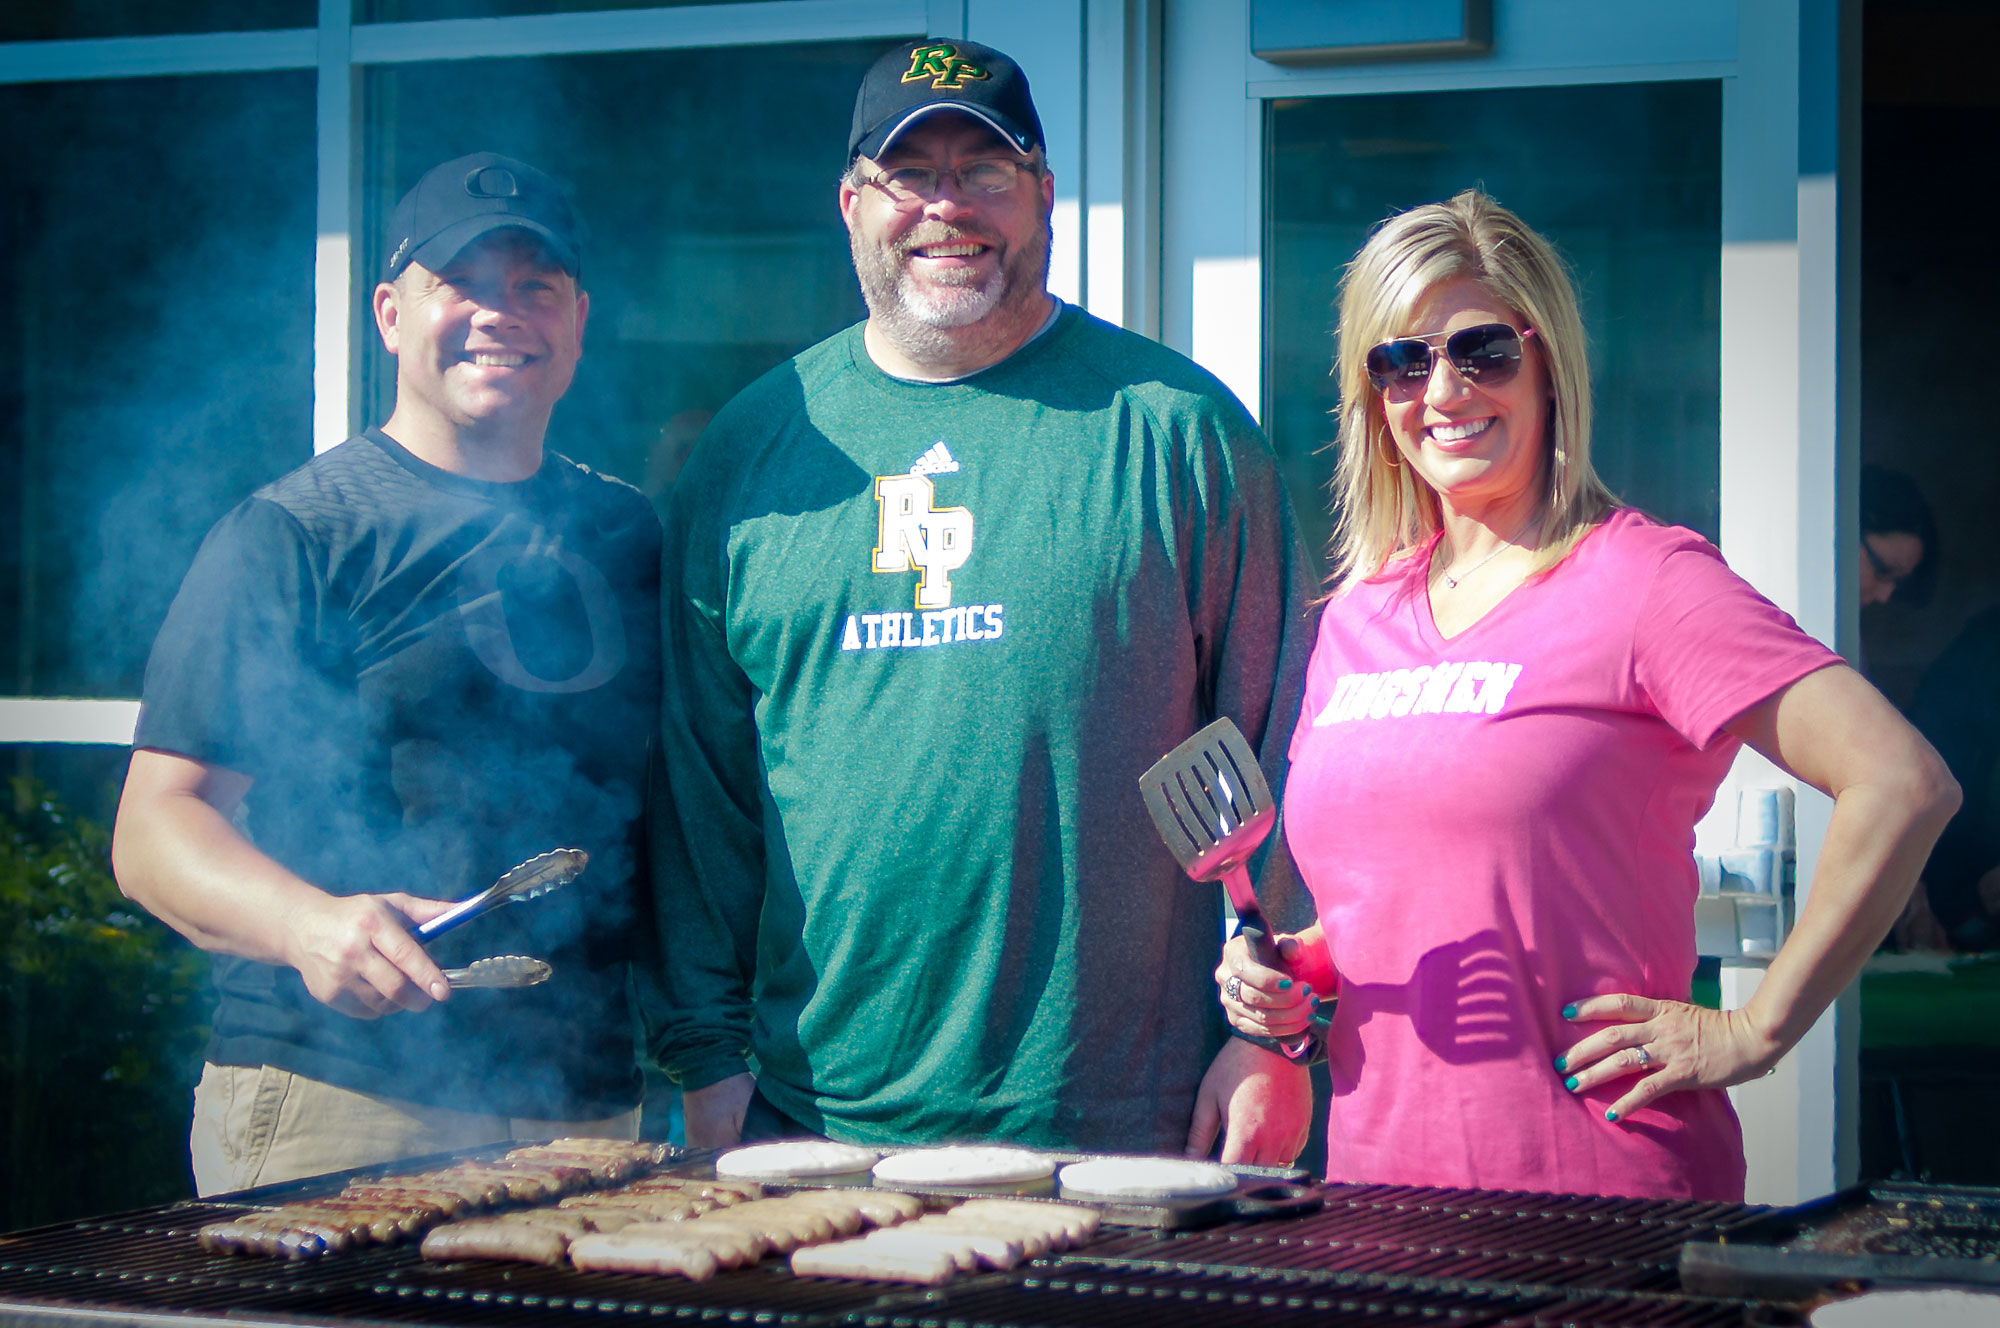 Gridiron members cooking pancakes and sausage on the BBQ grill.